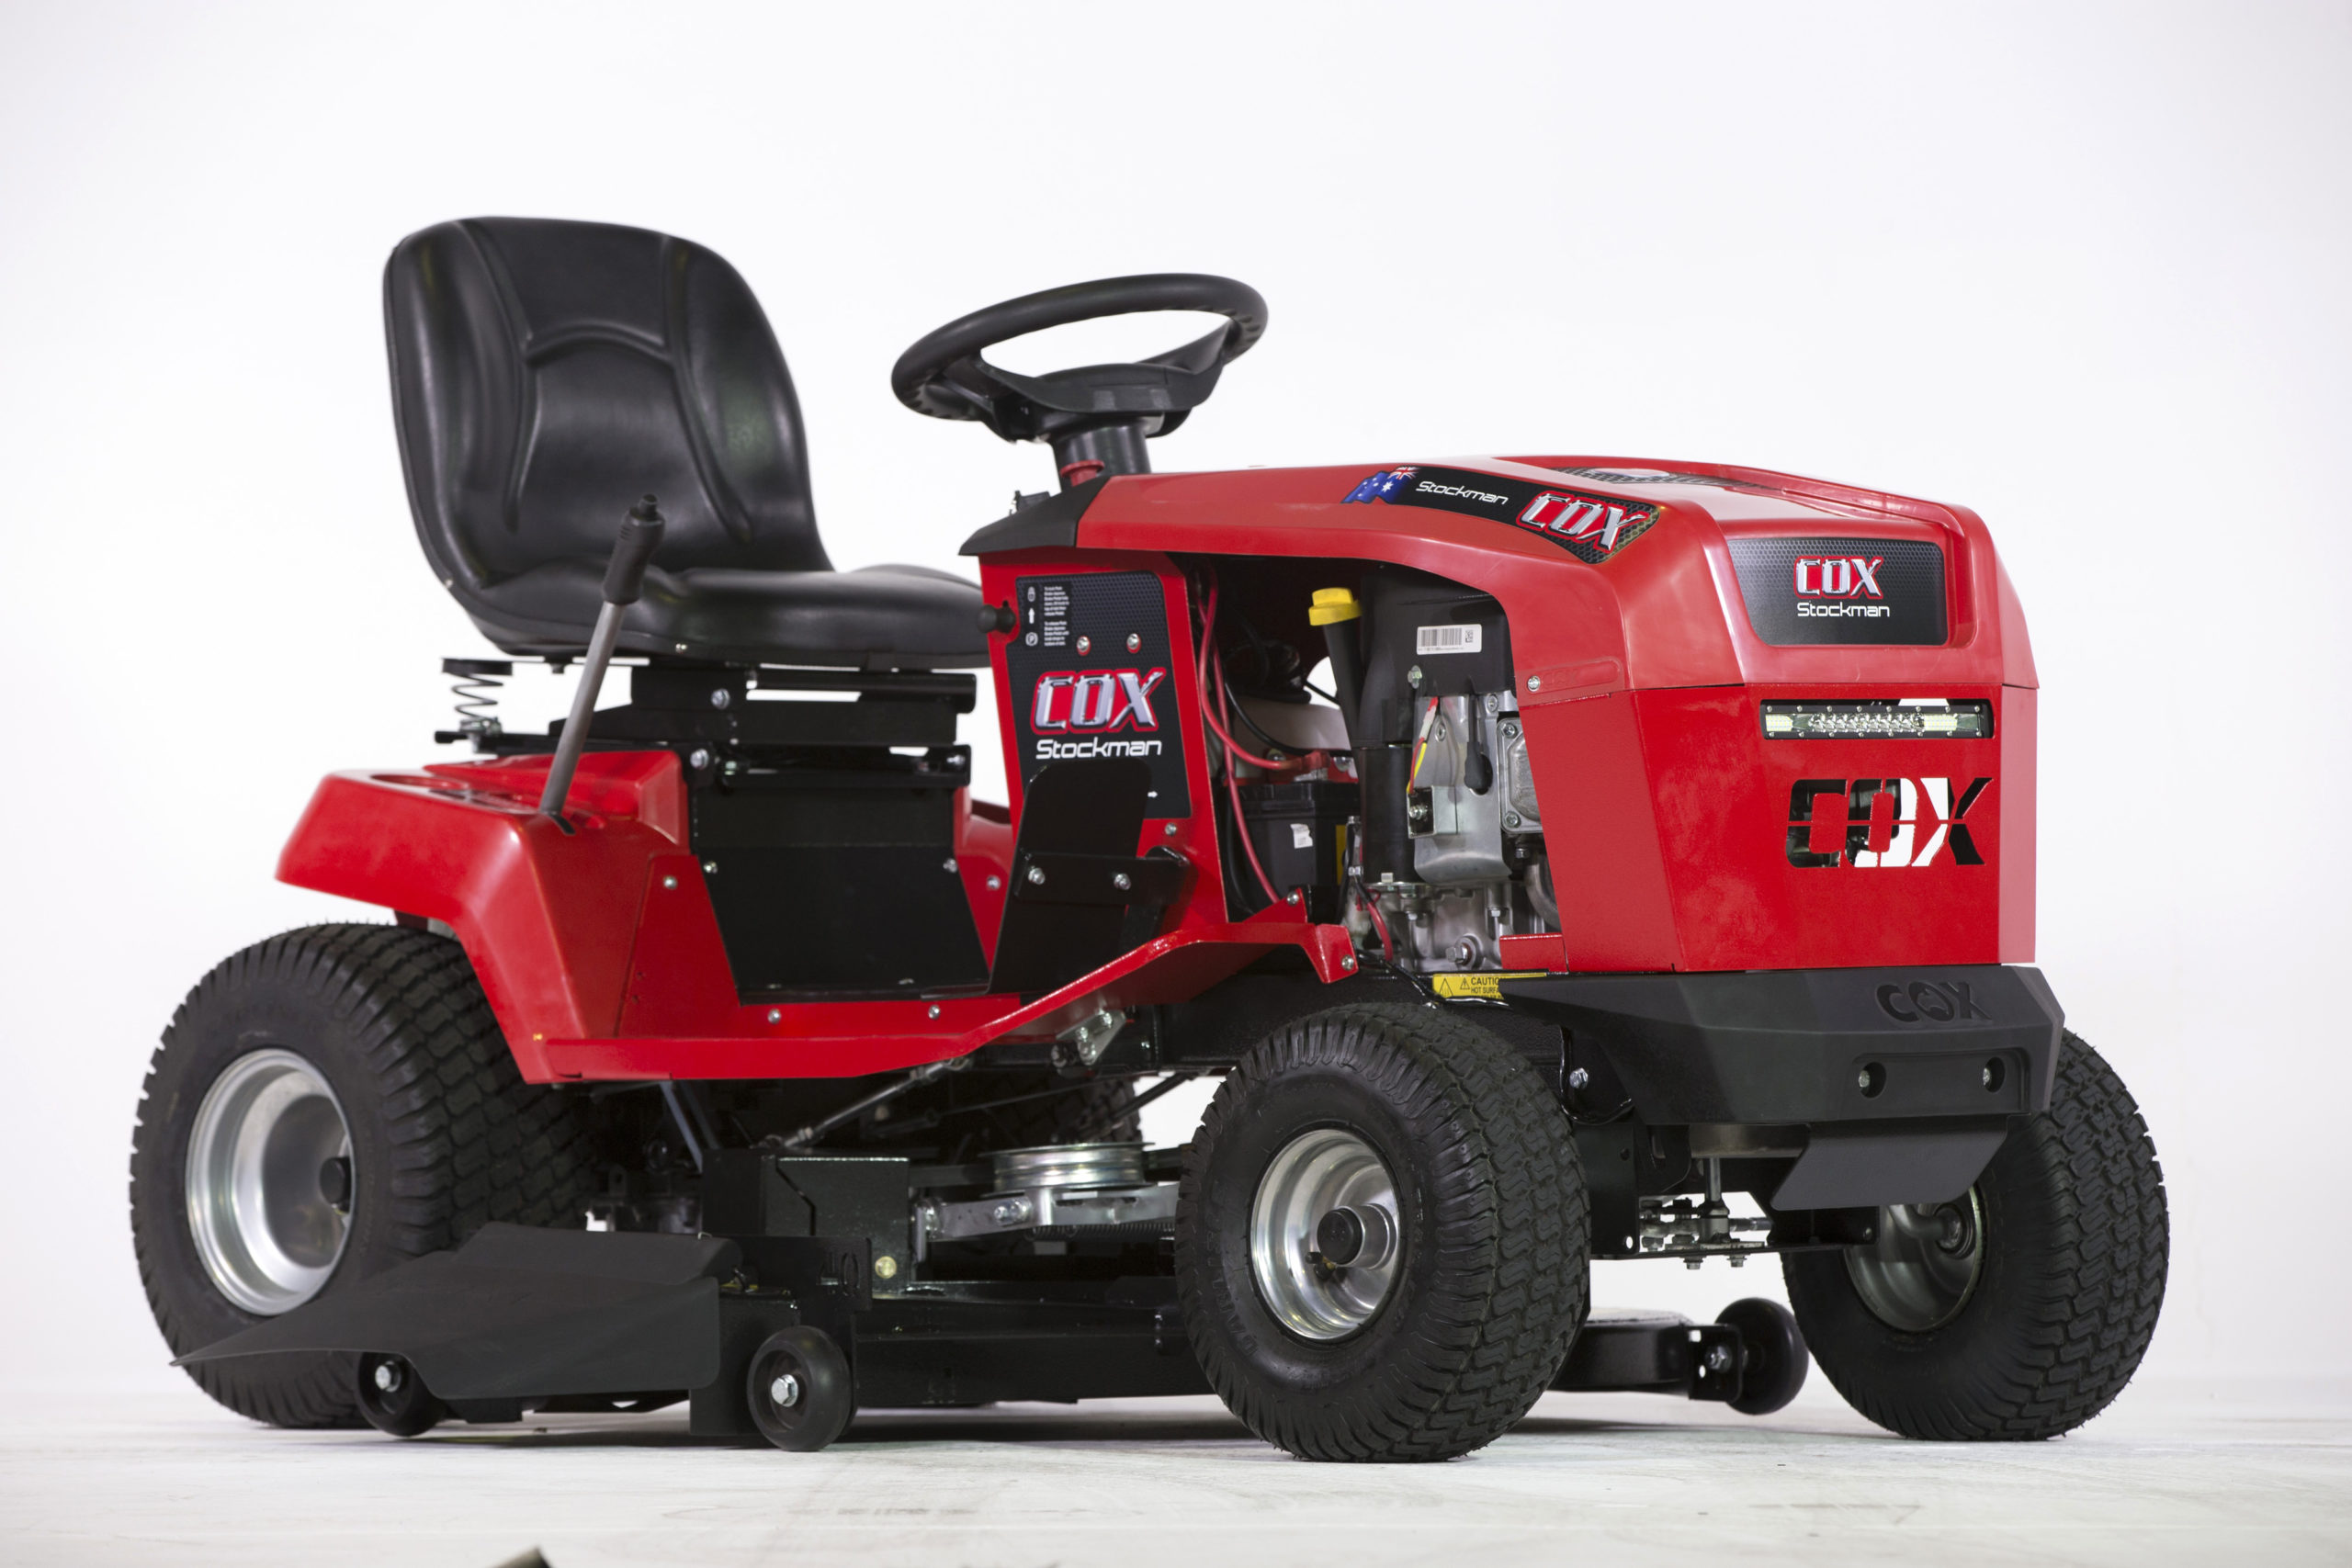 image of the Cox Stockman Plus 17B40 Ride on Mower